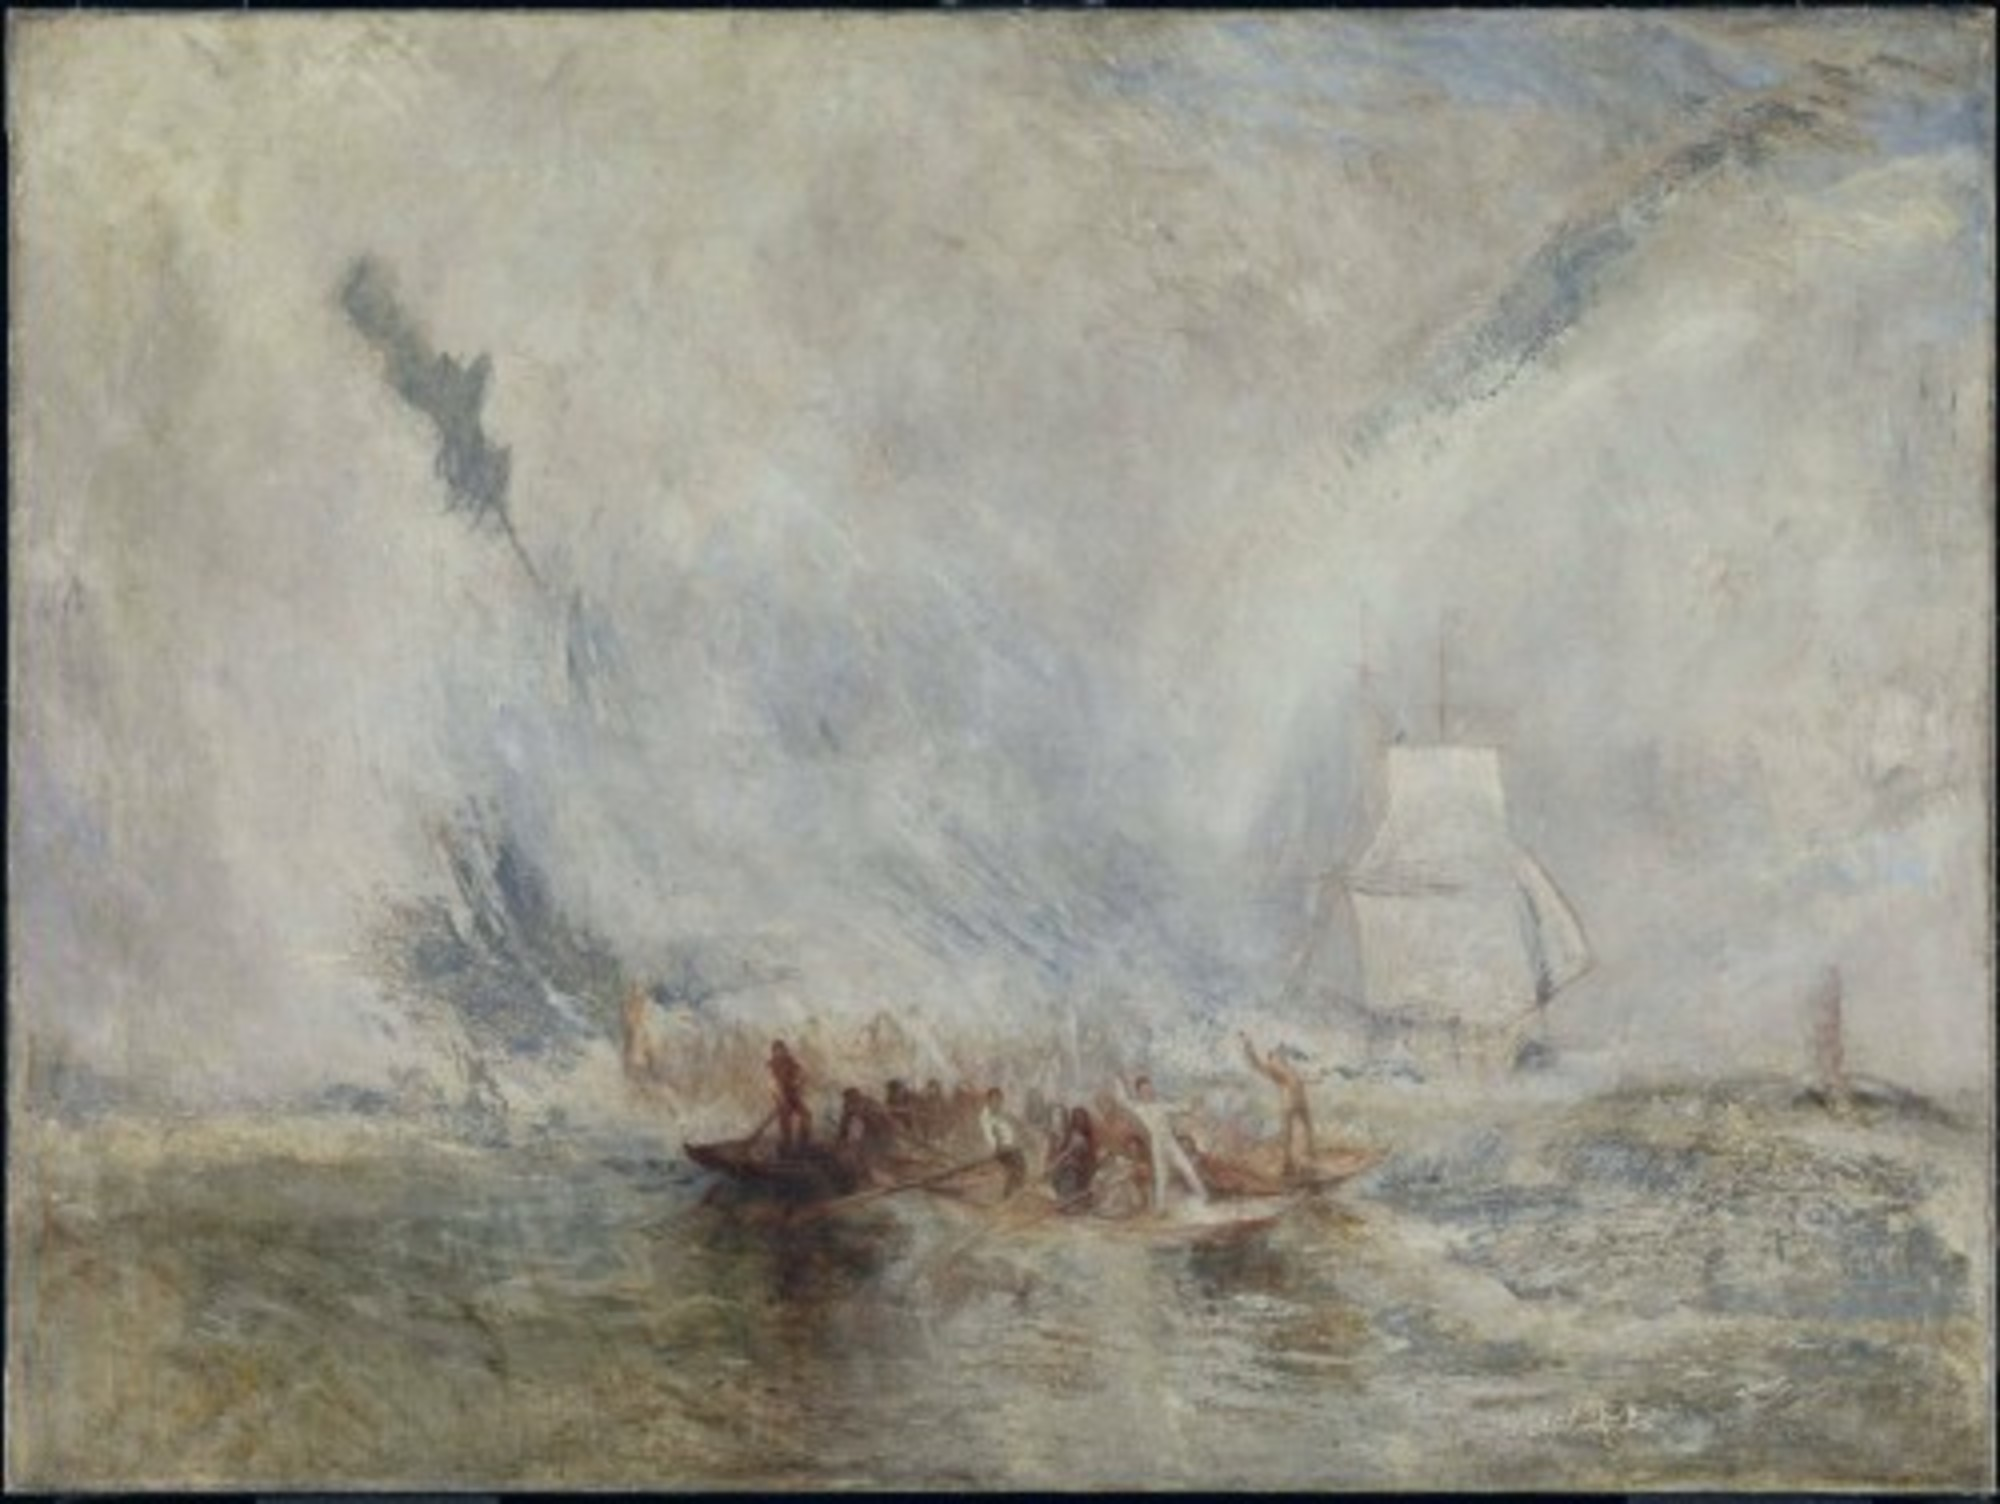 Whalers, 1845